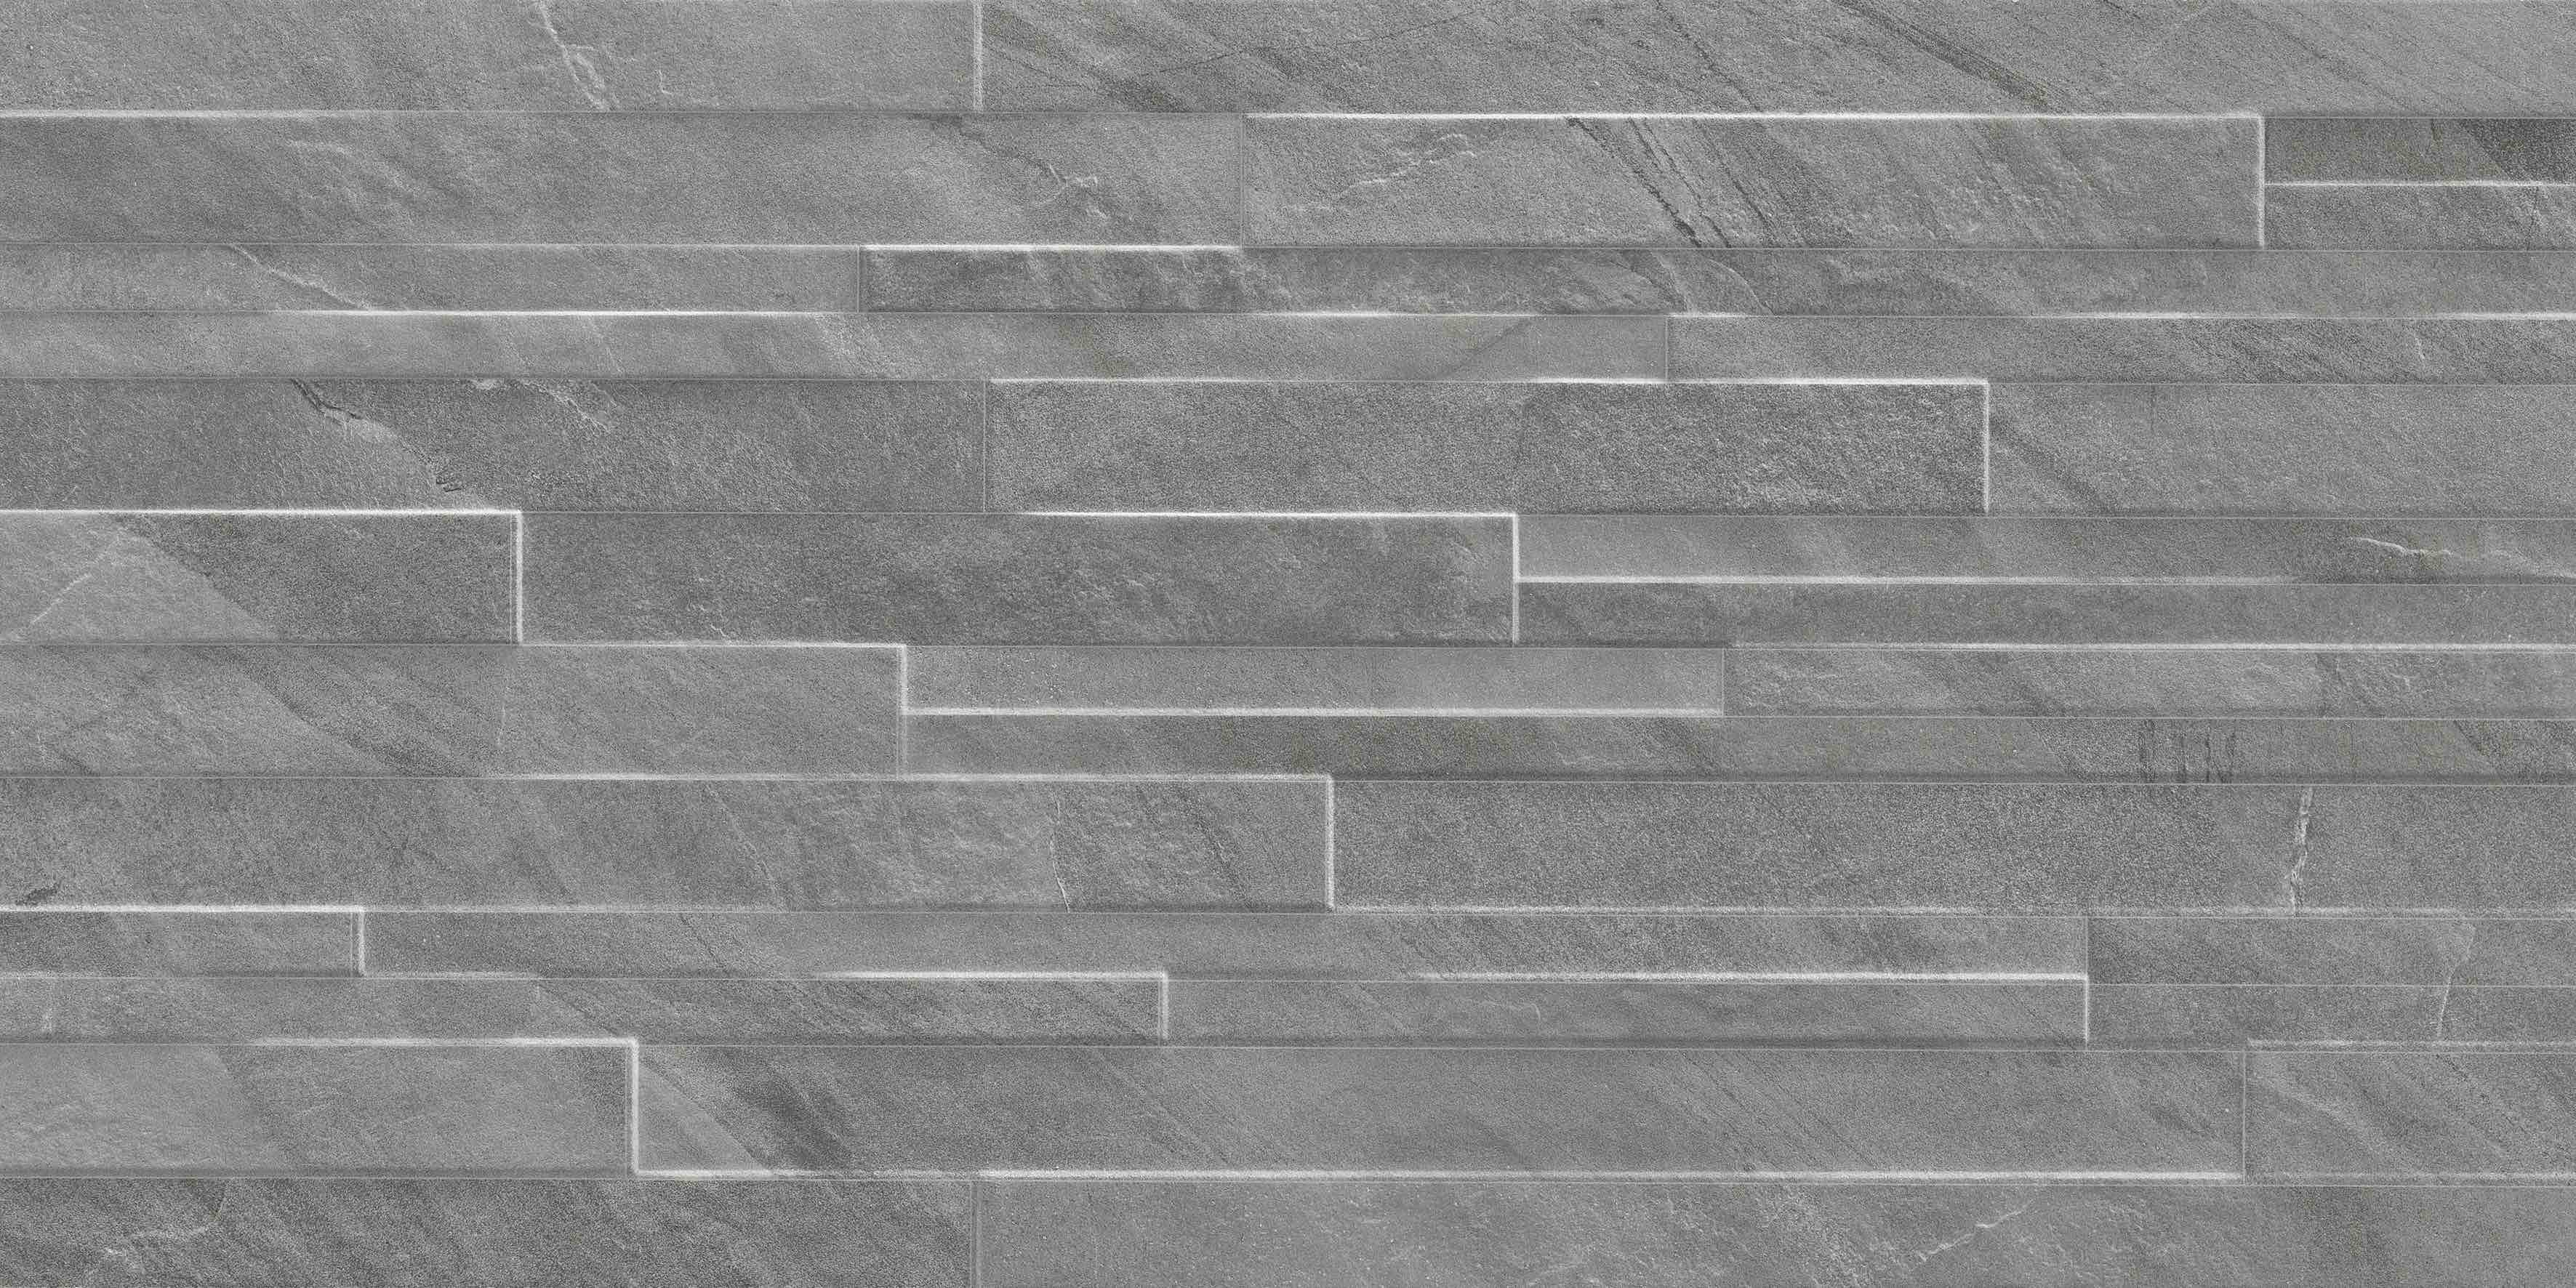 Ocean Black Rock Murretto - Faiola Tile